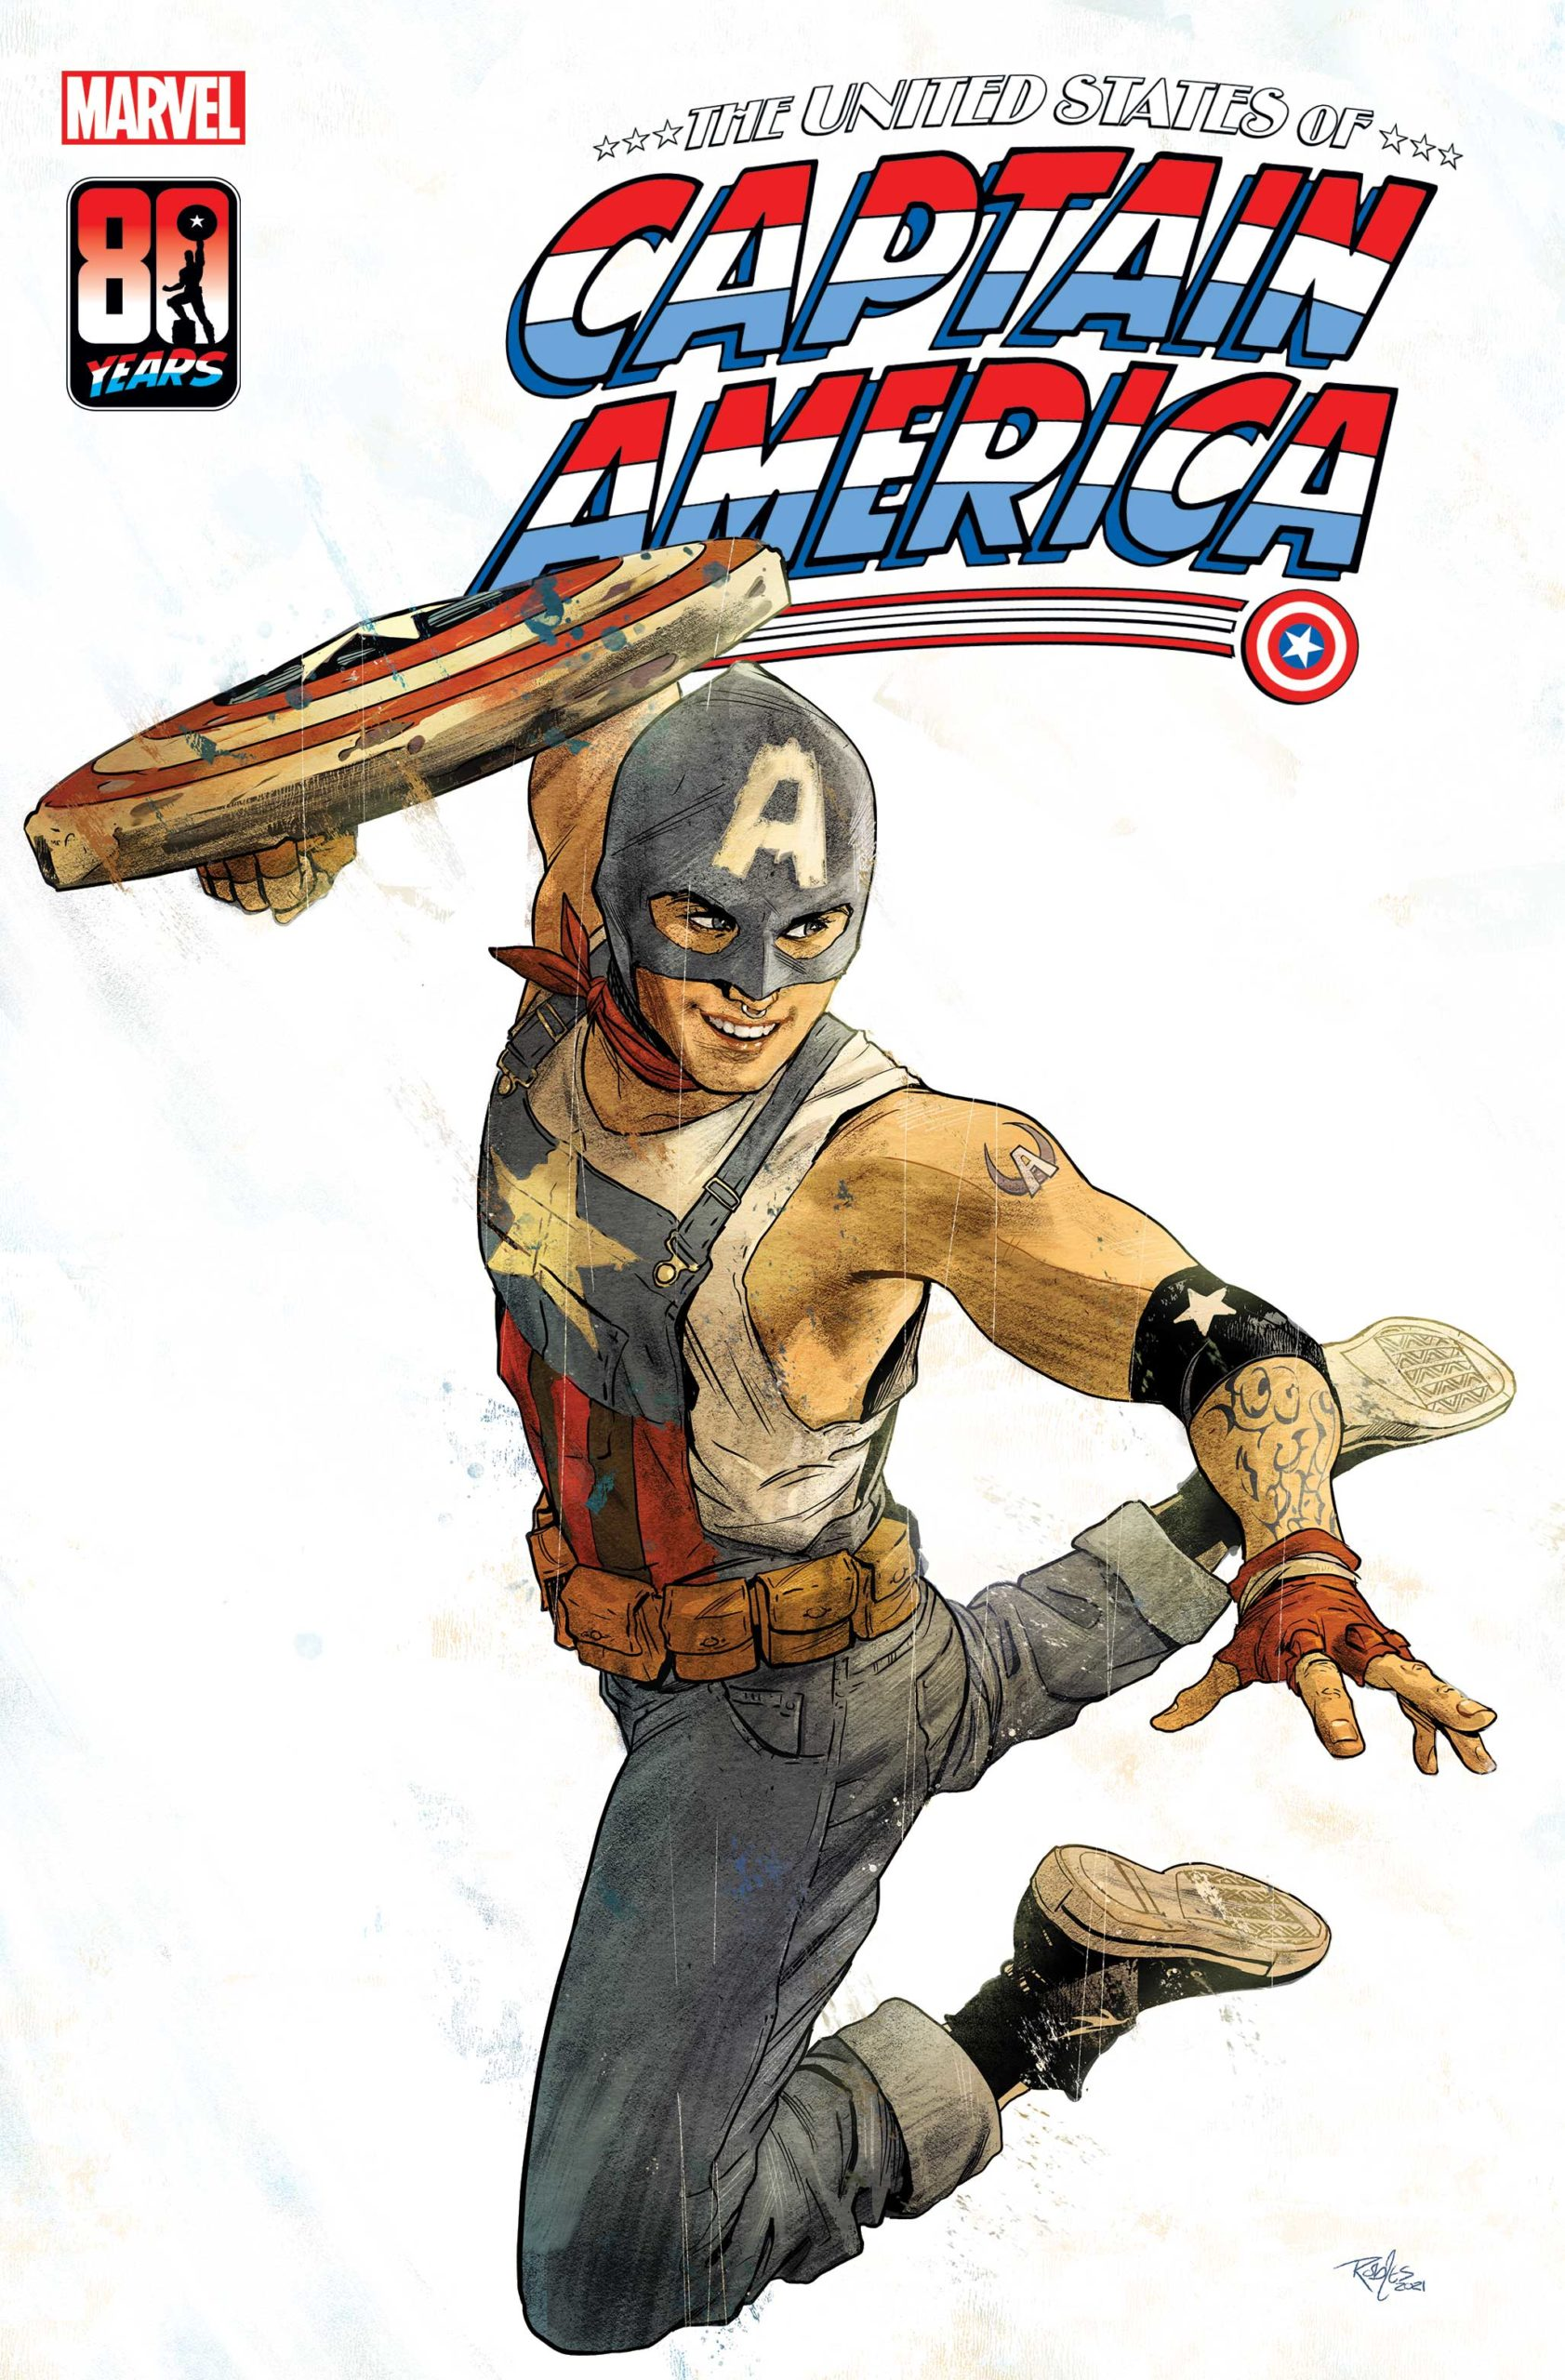 kapitan ameryka gej lgbt marvel komiks united states of captain america cover